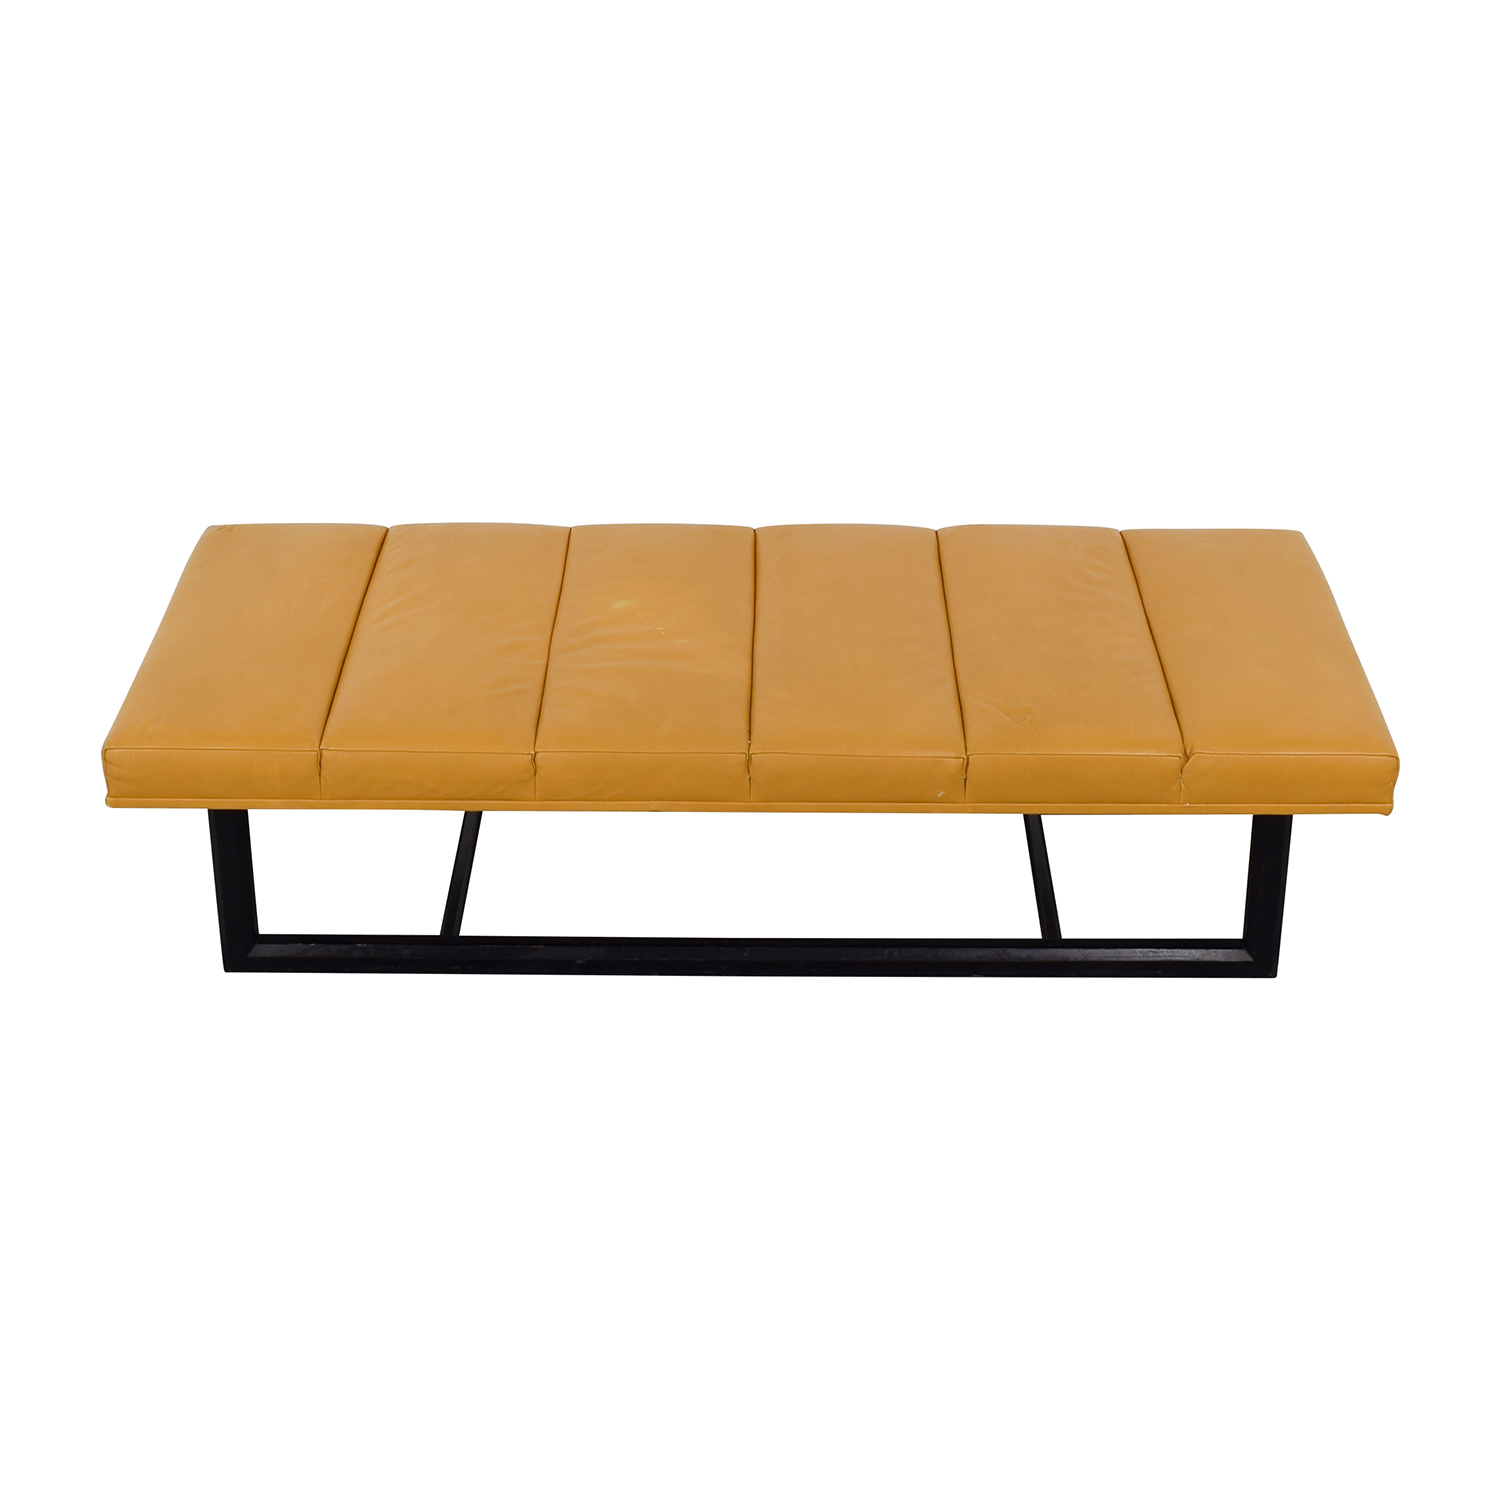 Bright Bright Leather Bench Benches